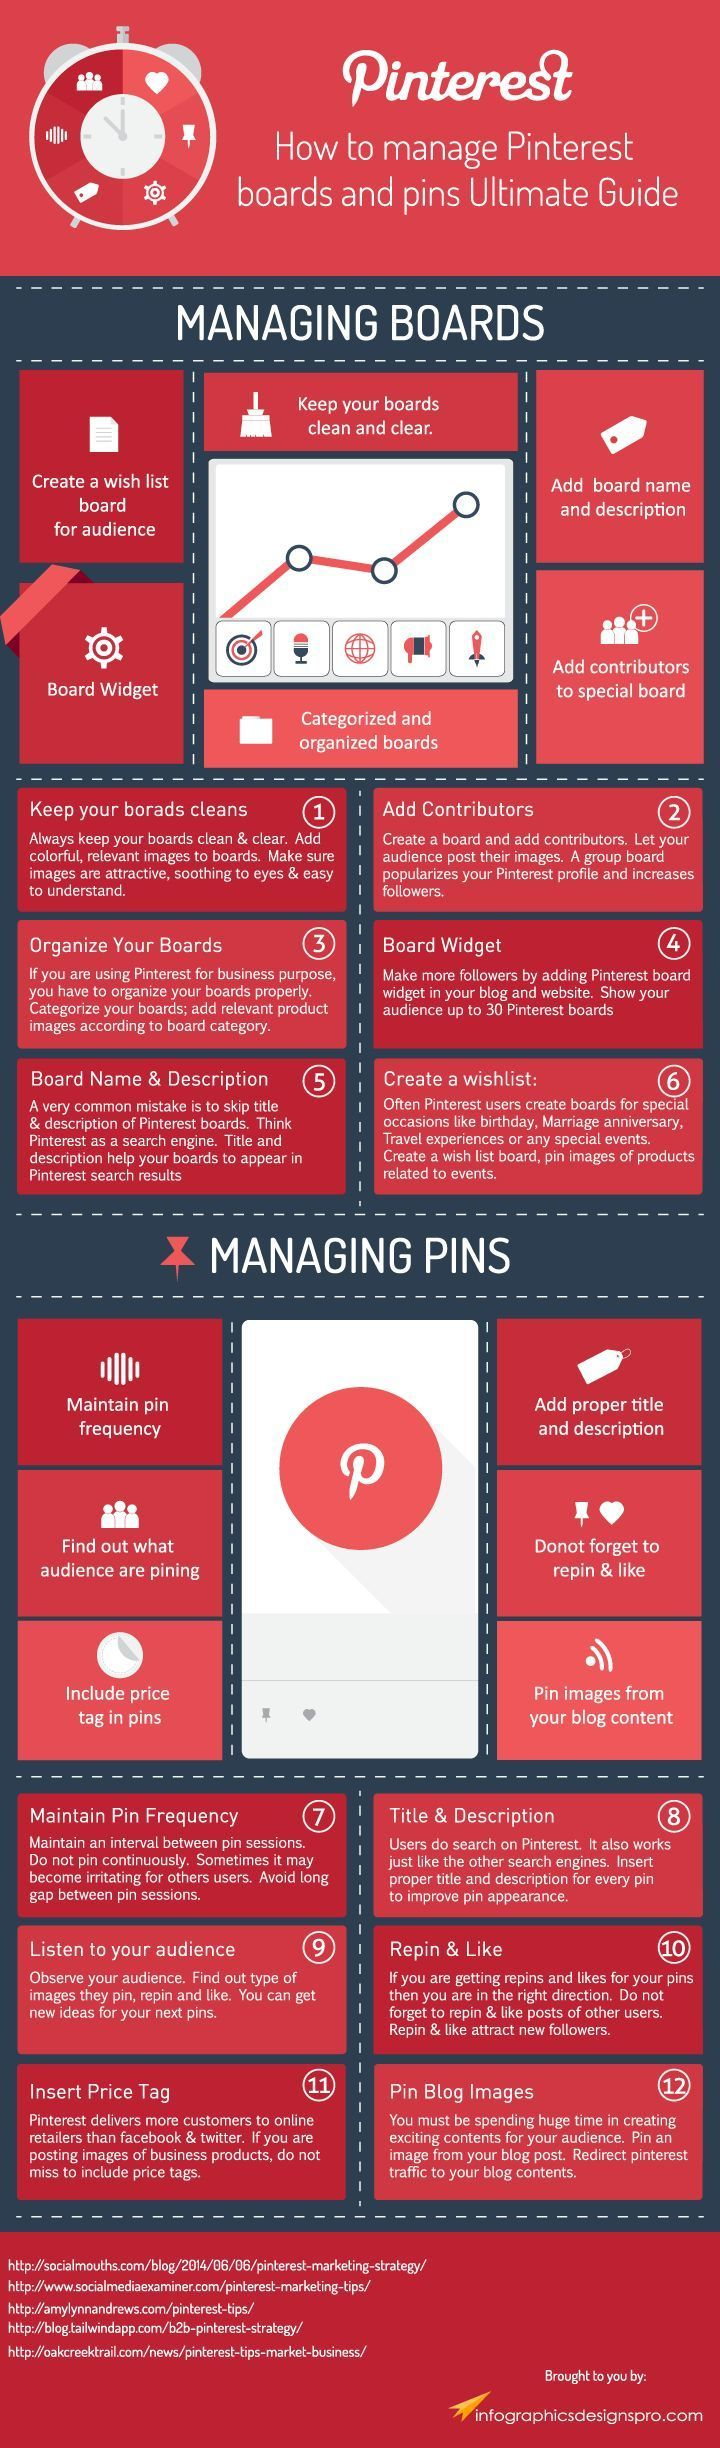 How to manage pinterest boards and pins - ultimate guide ---> #infographic…